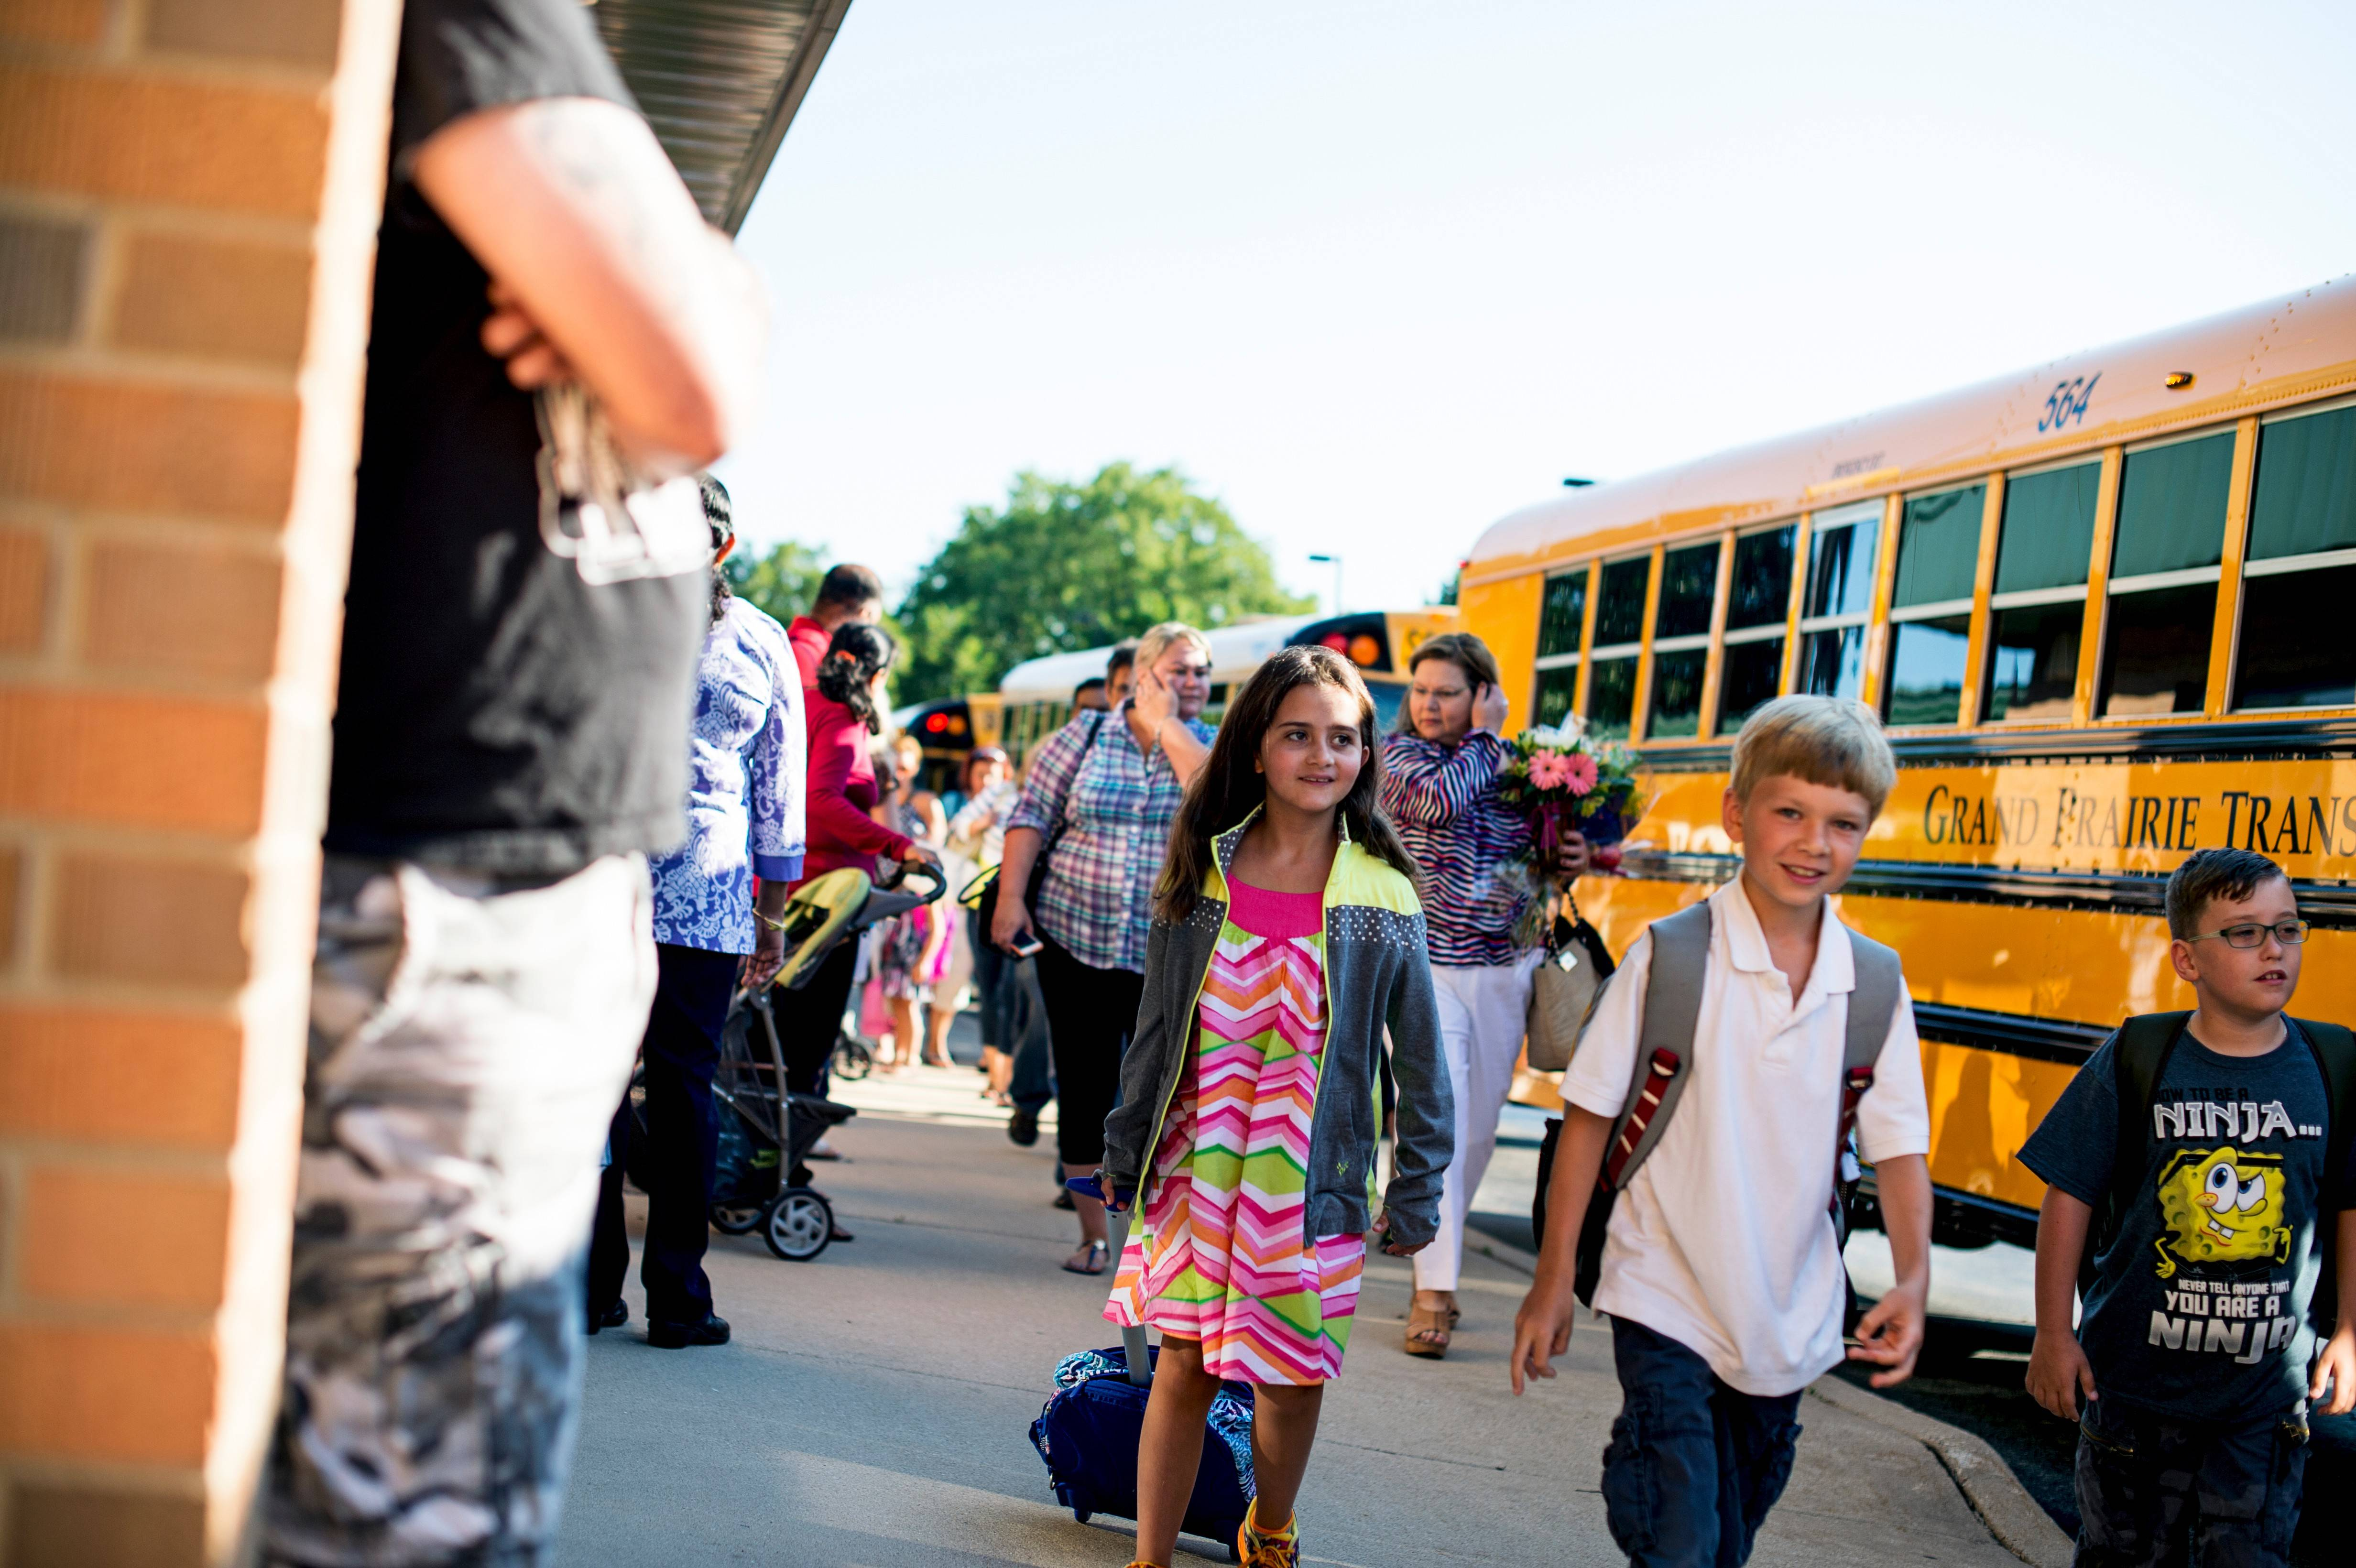 Students enter Ridge Family Center for Learning on the school's first day back in session recently after a break.